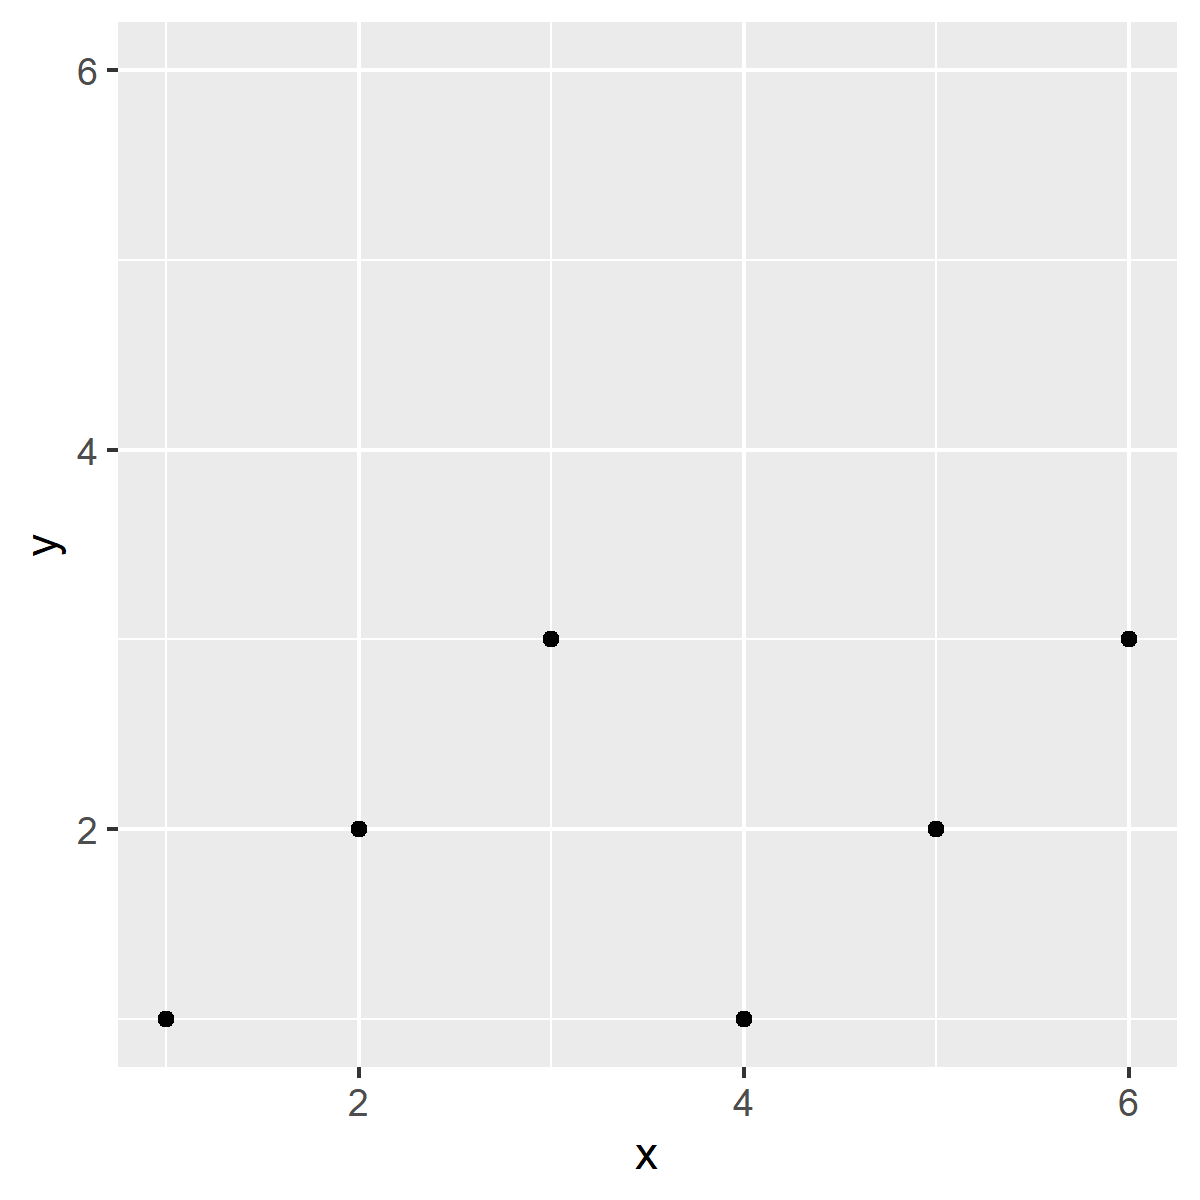 r graph figure 6 force axes be square shaped